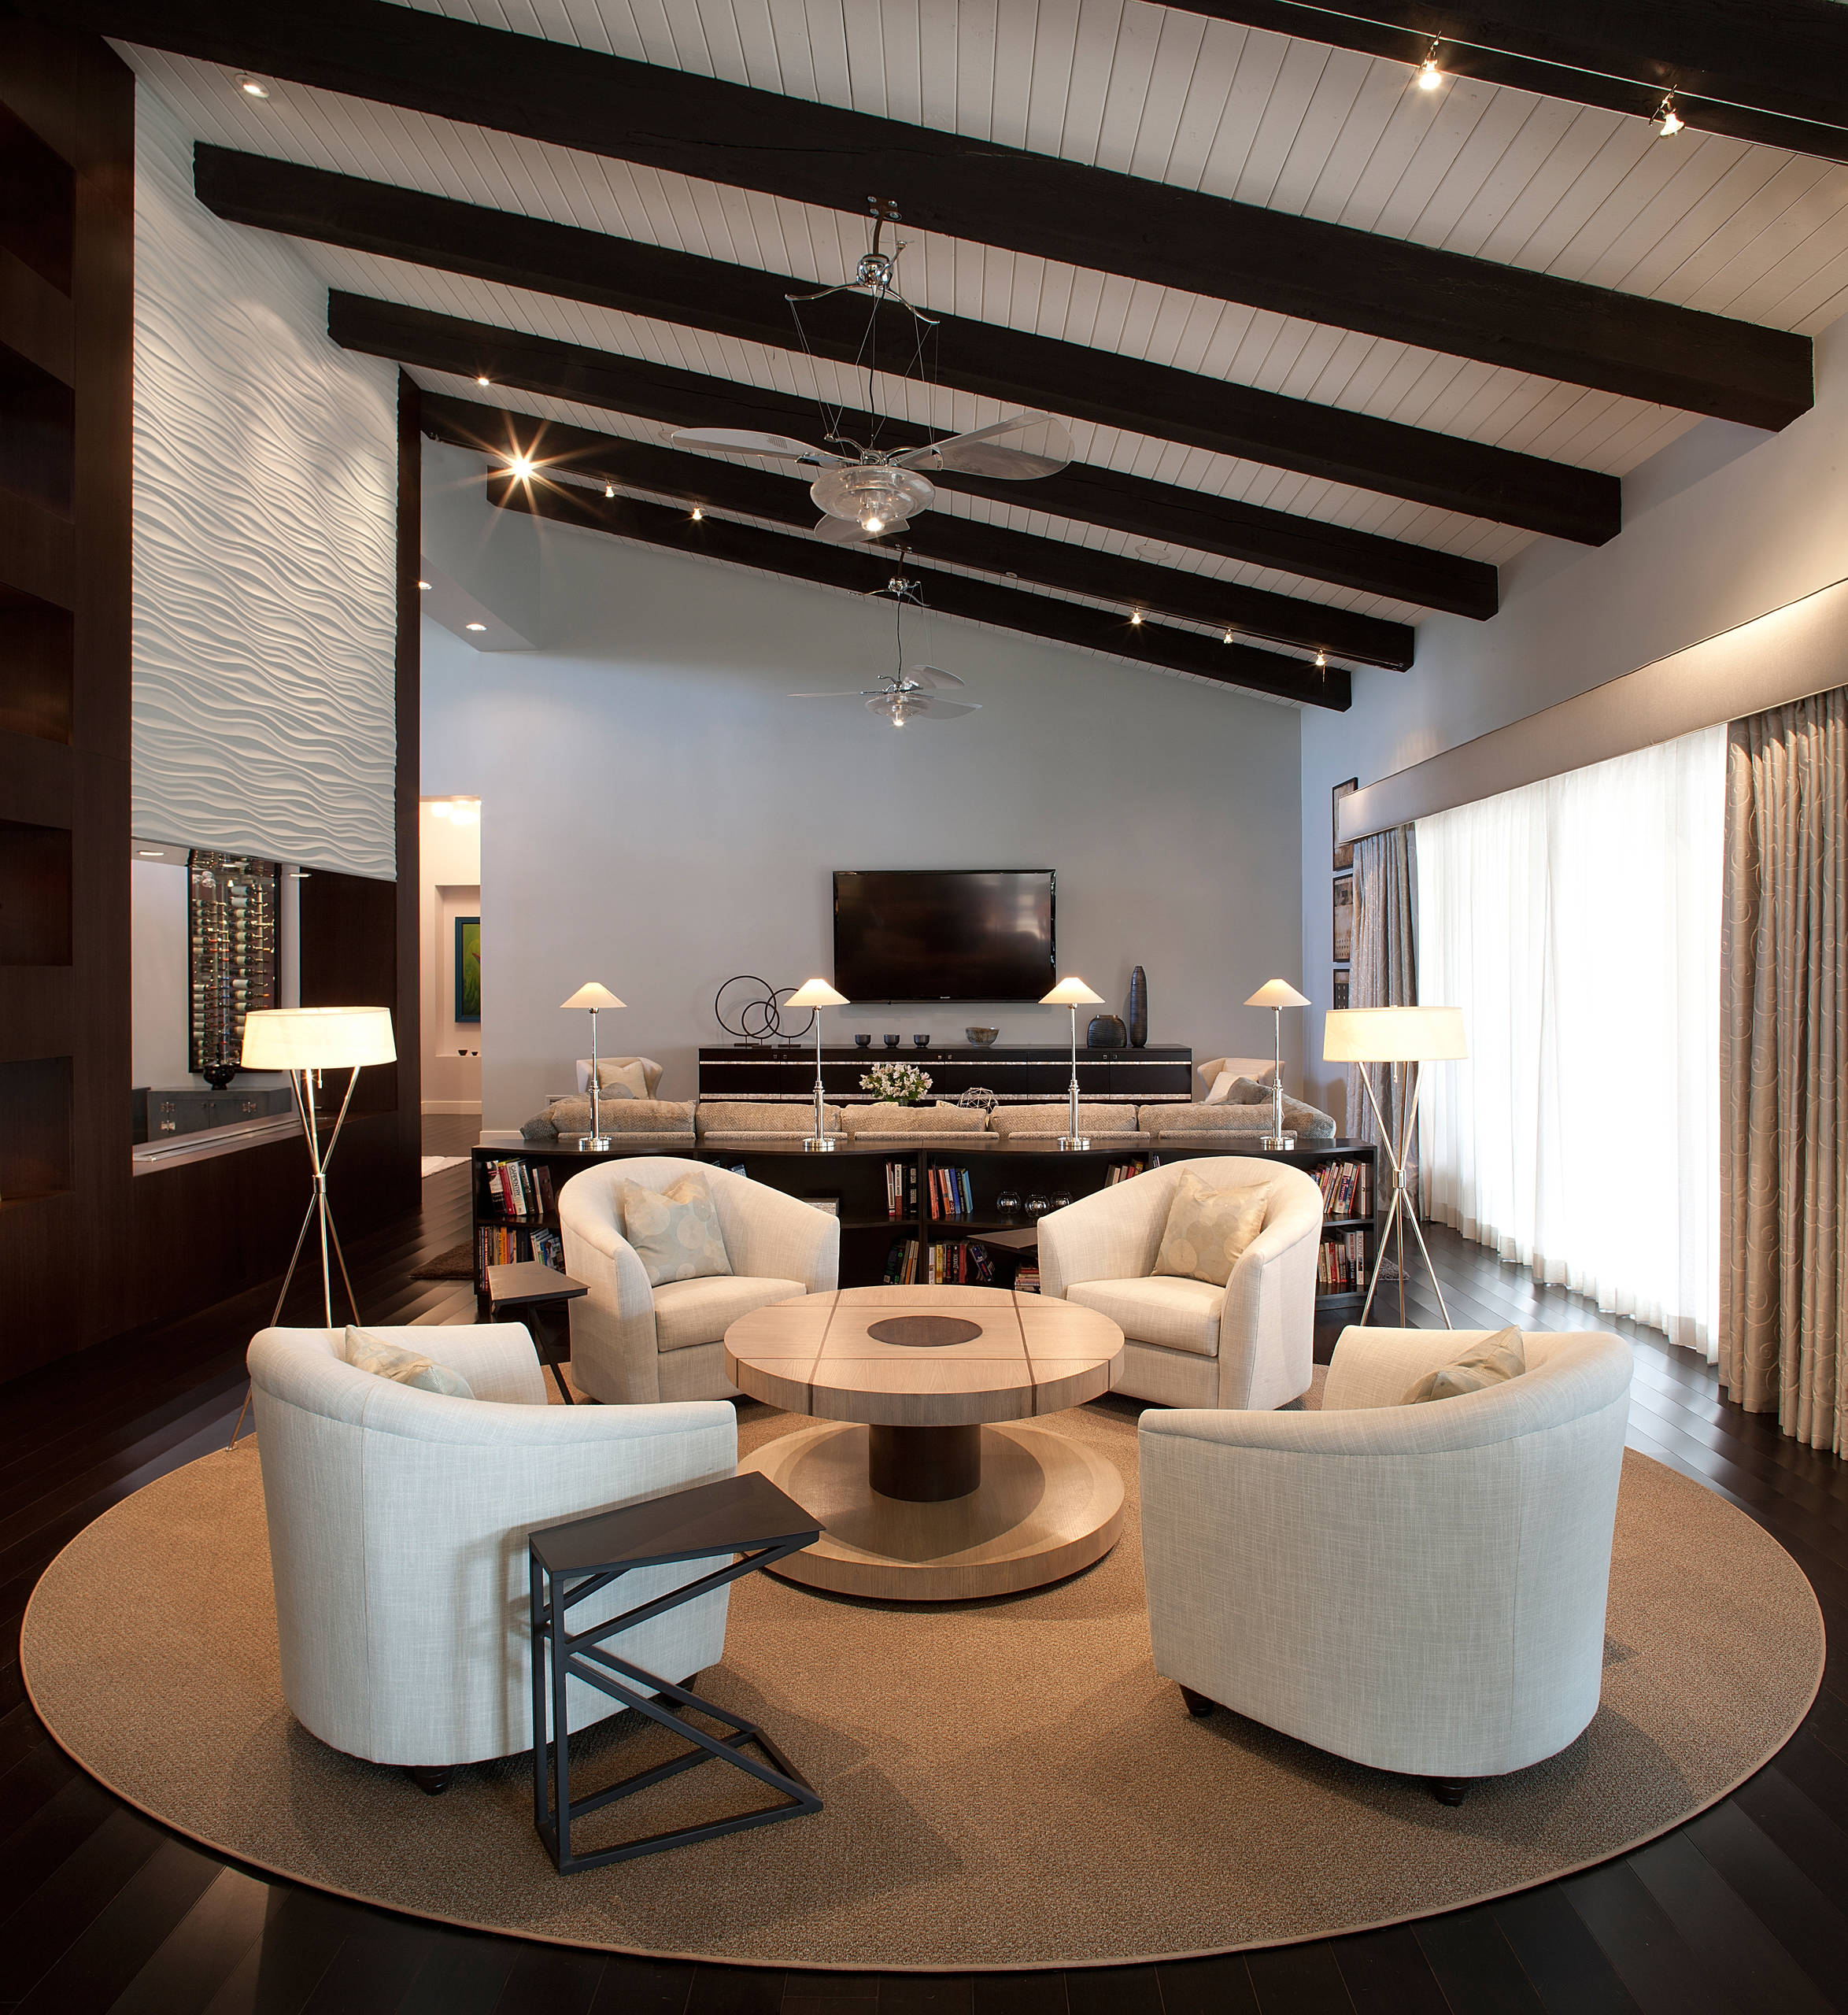 2014 FIRST PLACE WINNER * ASID AWARD - Great Room